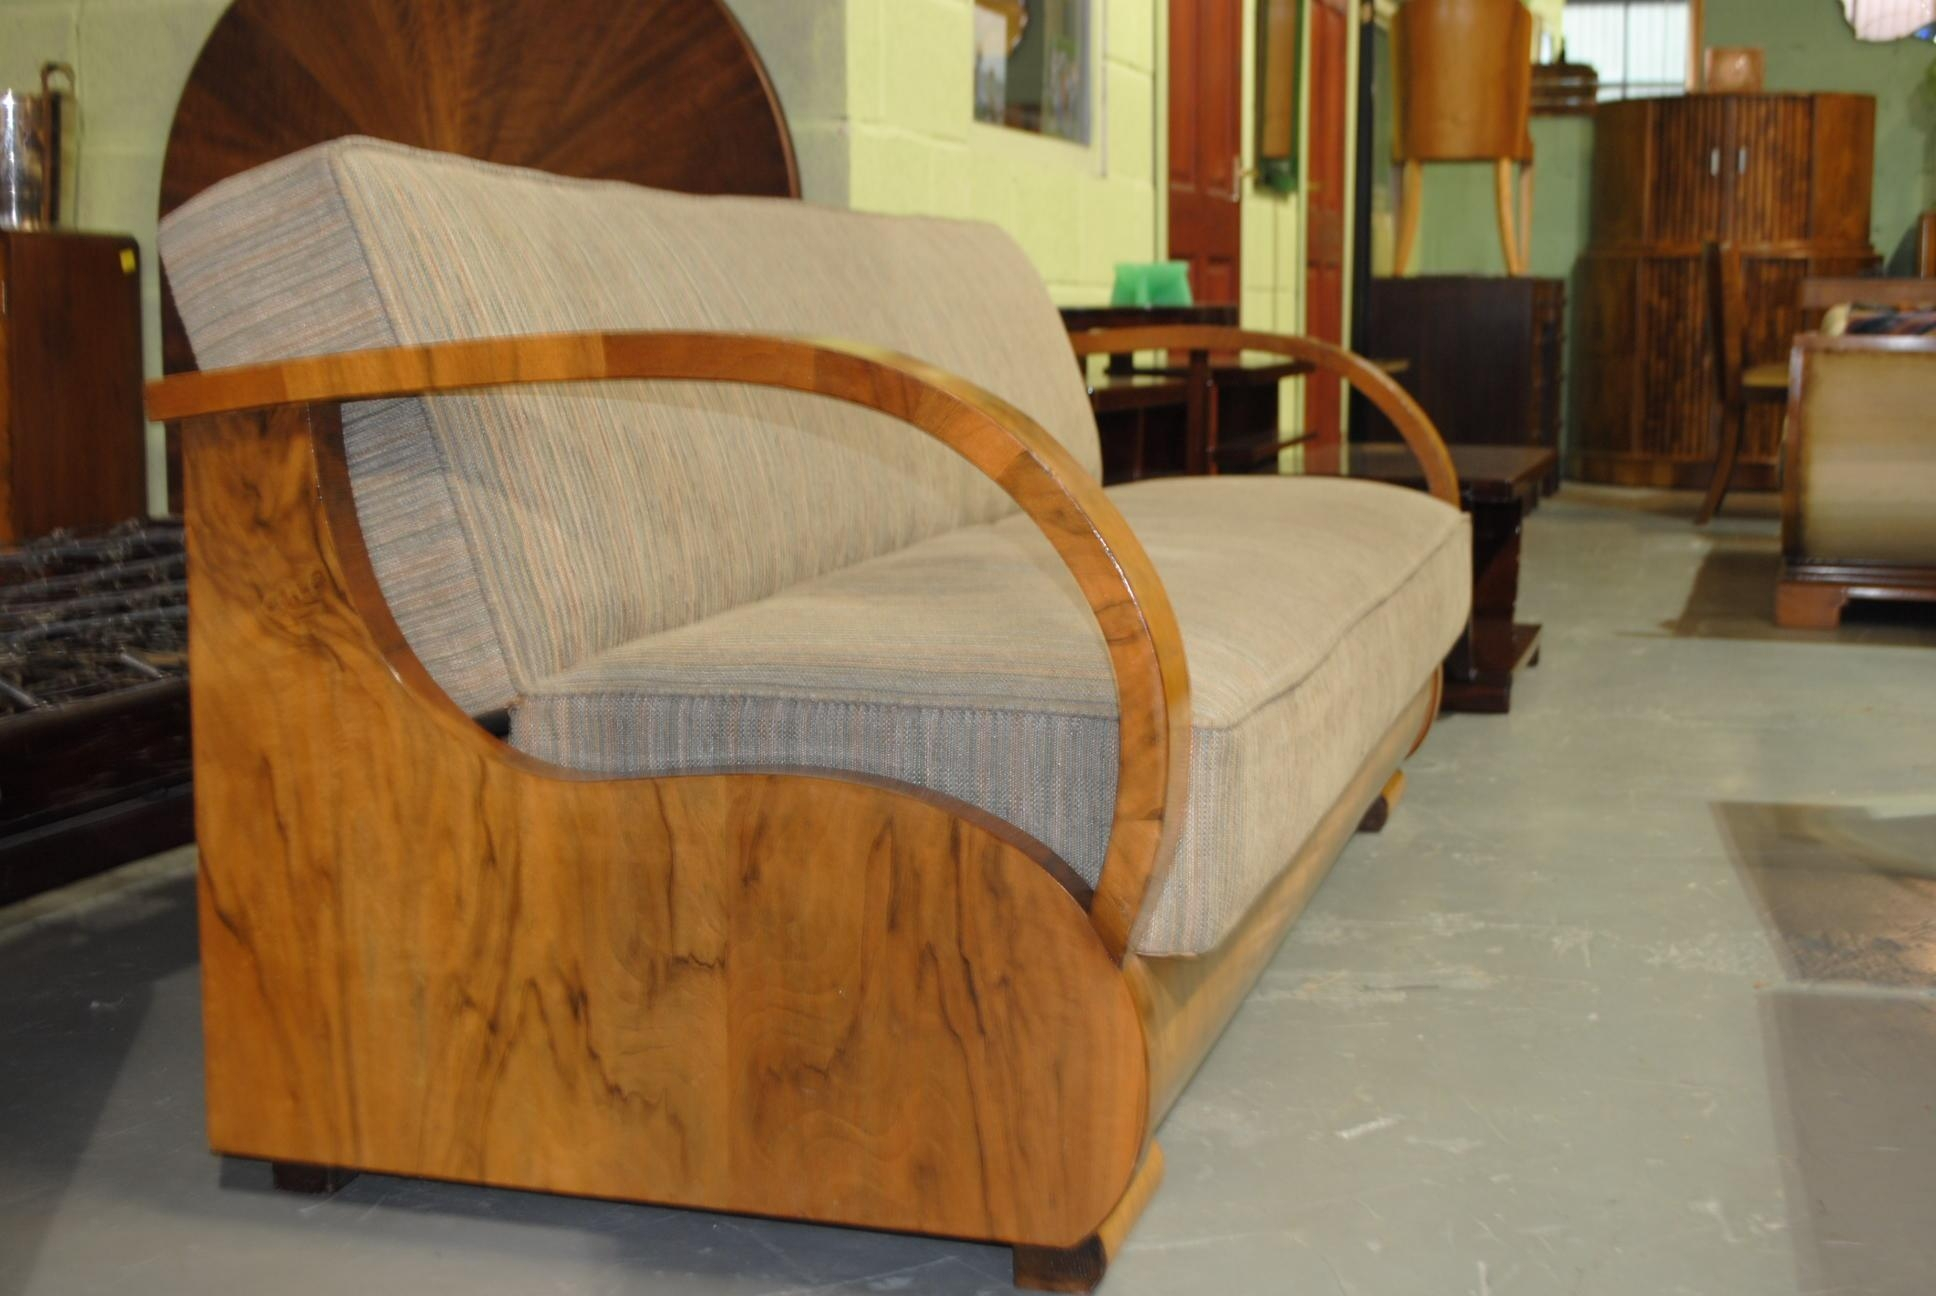 Unusual Sofas ~ Home Decor with Unusual Sofas